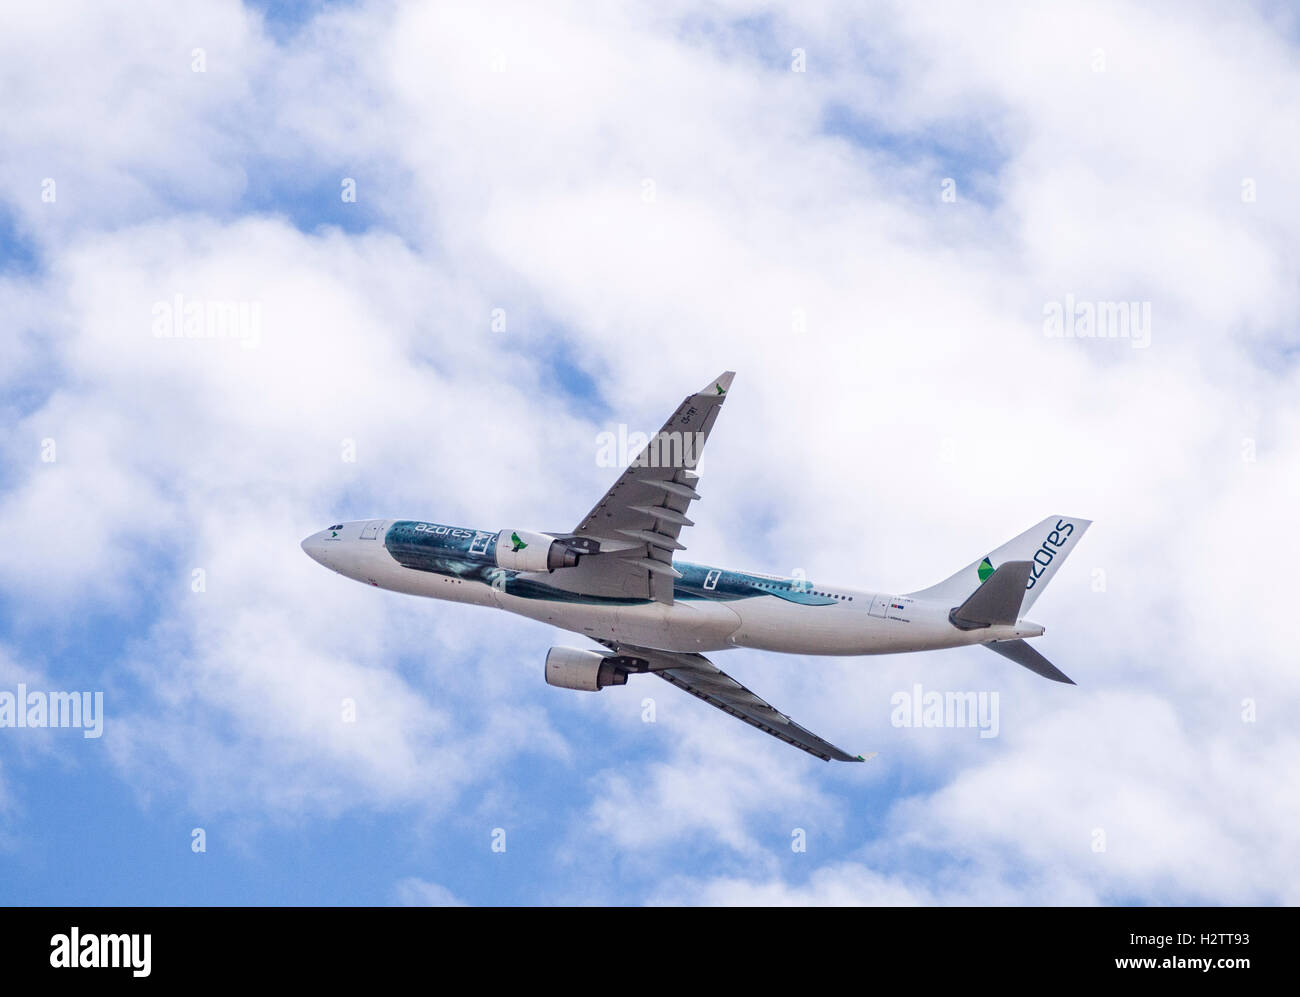 Azores Airlines' first A330 takes off over Ponta Delgada. An Azores plane in its 2016 livery takes off and flies - Stock Image